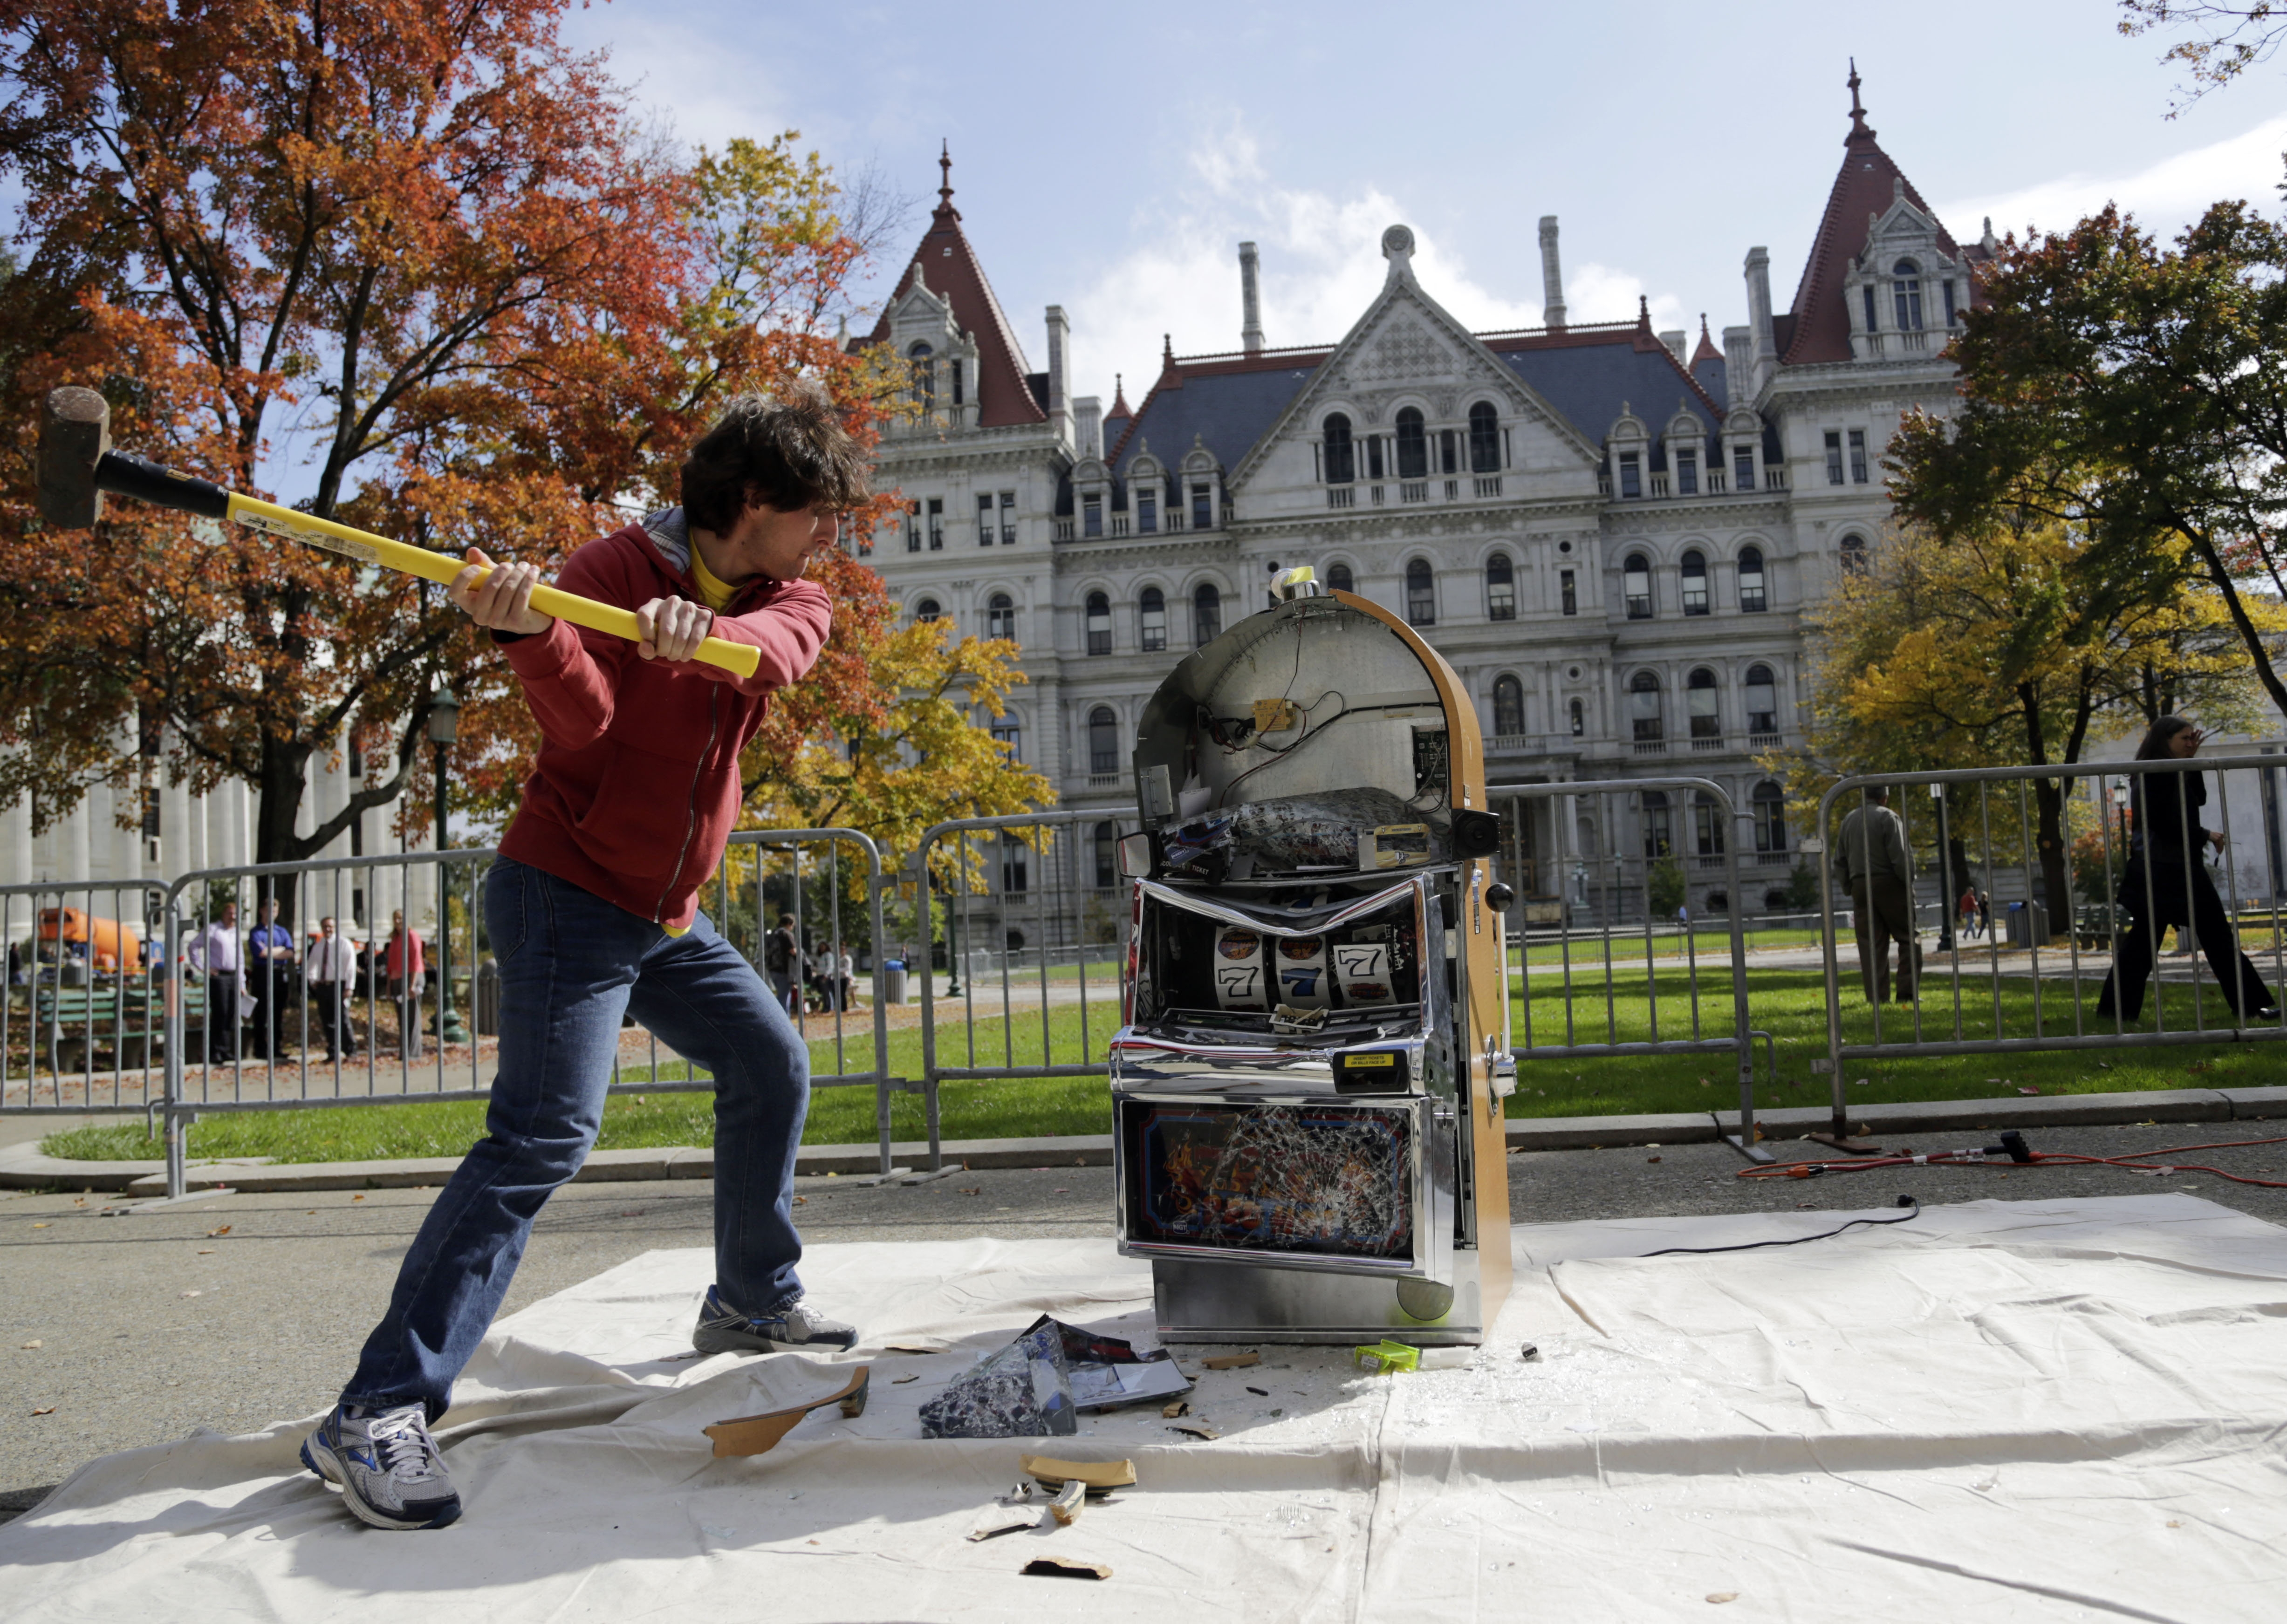 Bill Sisk of the Rockefeller Institute of Government smashes a slot machine with a sledge hammer during an anti-casino event outside the state Capitol today.